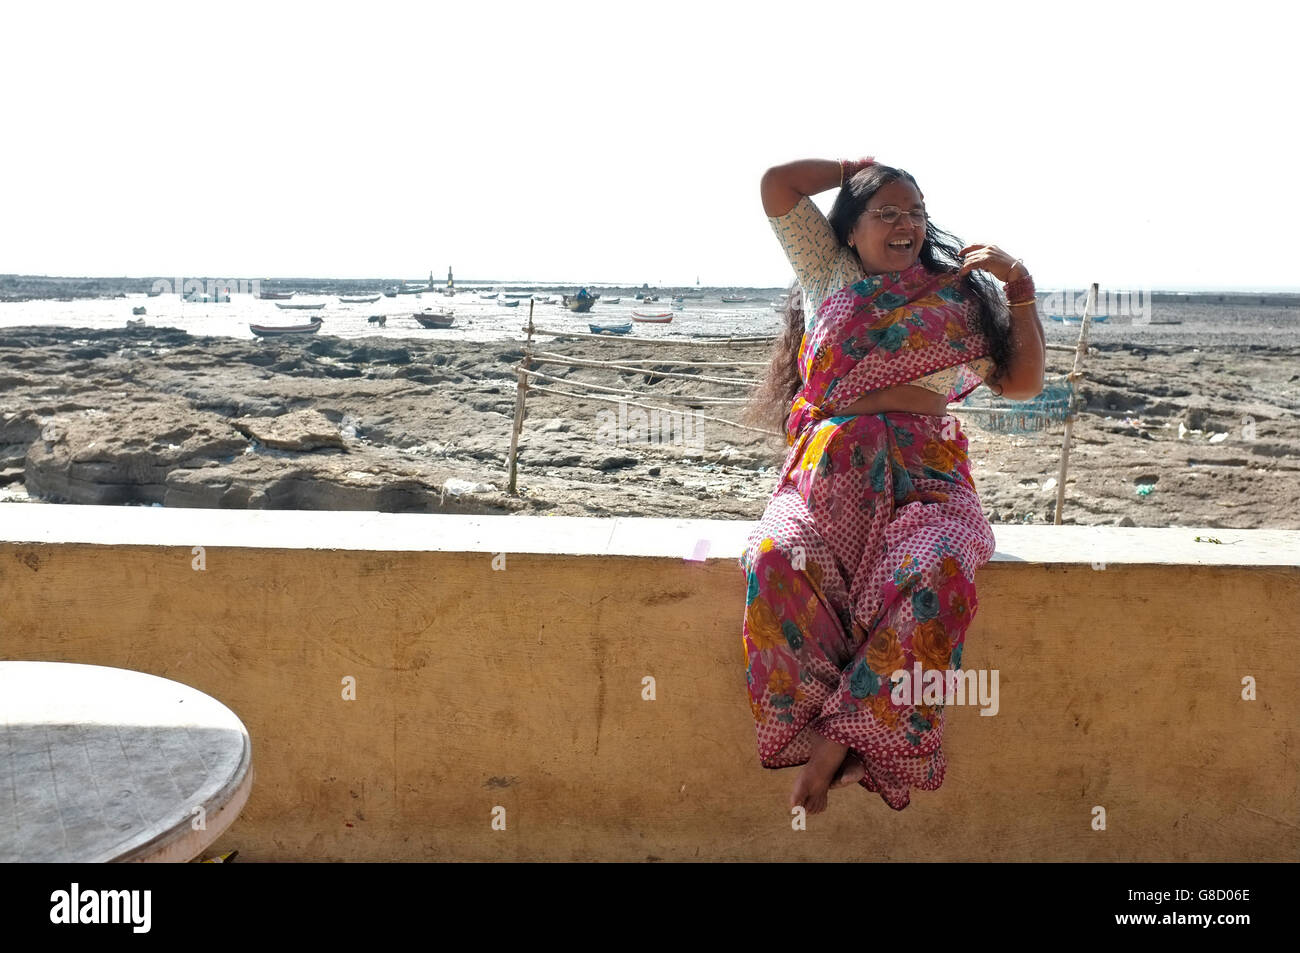 an indian local woman in saree poses at the beach front at the slum area of chimbai village, bandra, mumbai, india - Stock Image